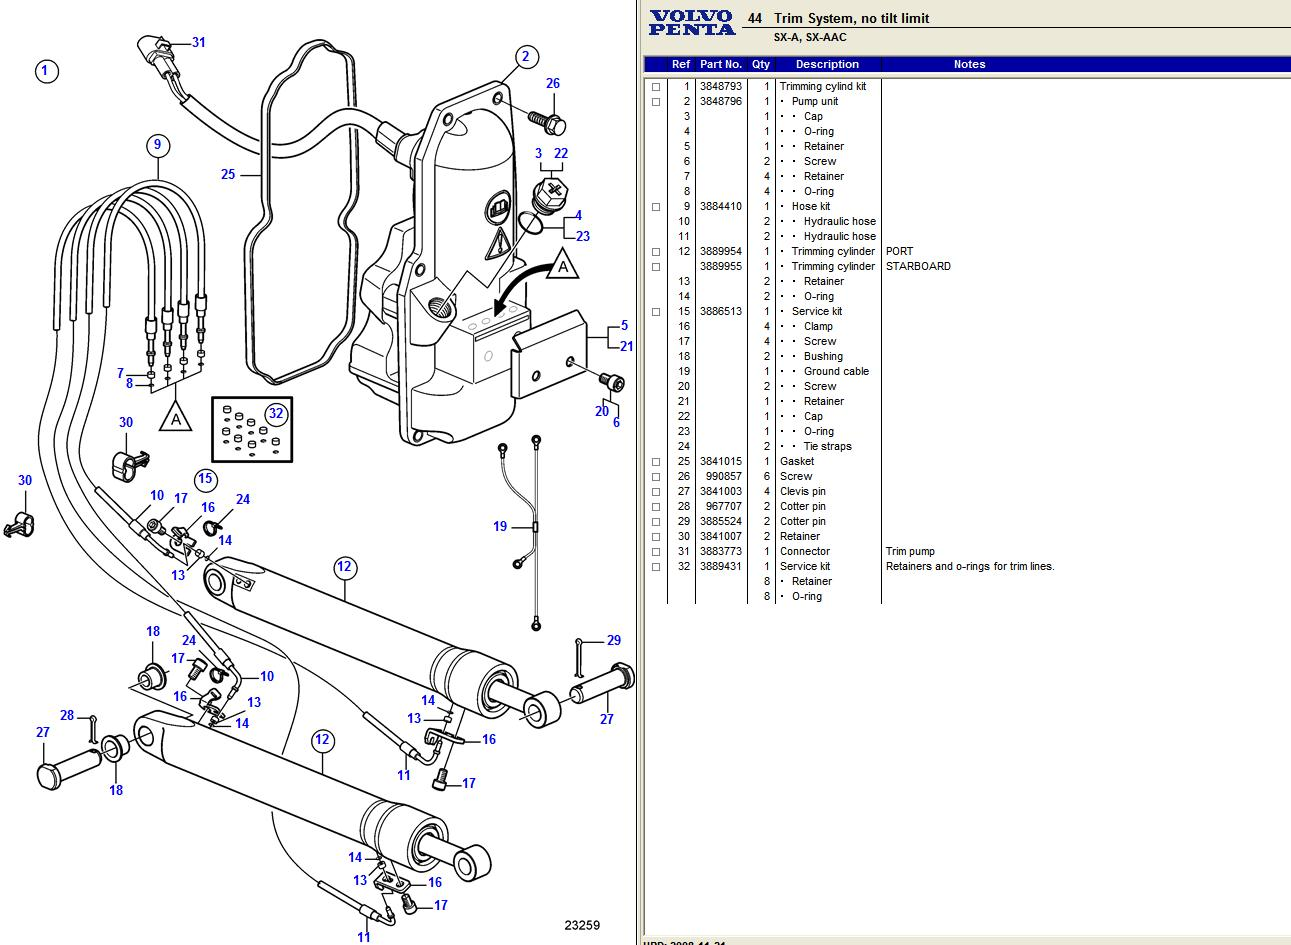 hight resolution of volvo pentum outdrive wiring diagram